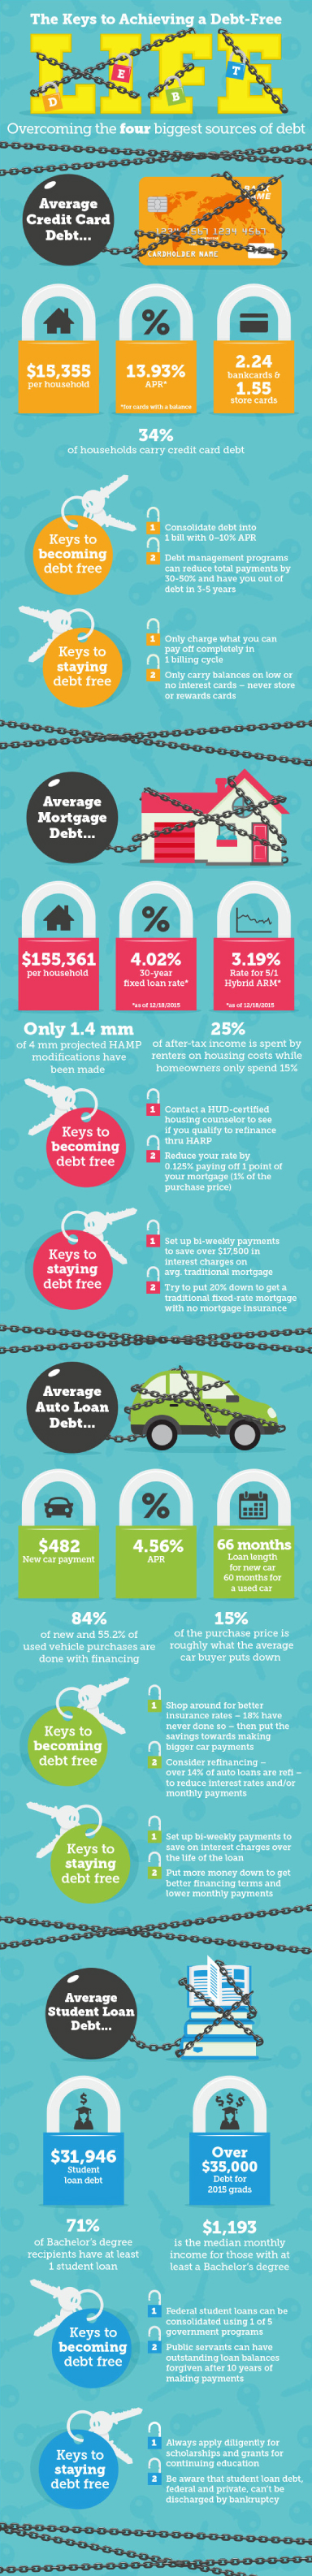 Keys to Achieving a Debt-free life infographic